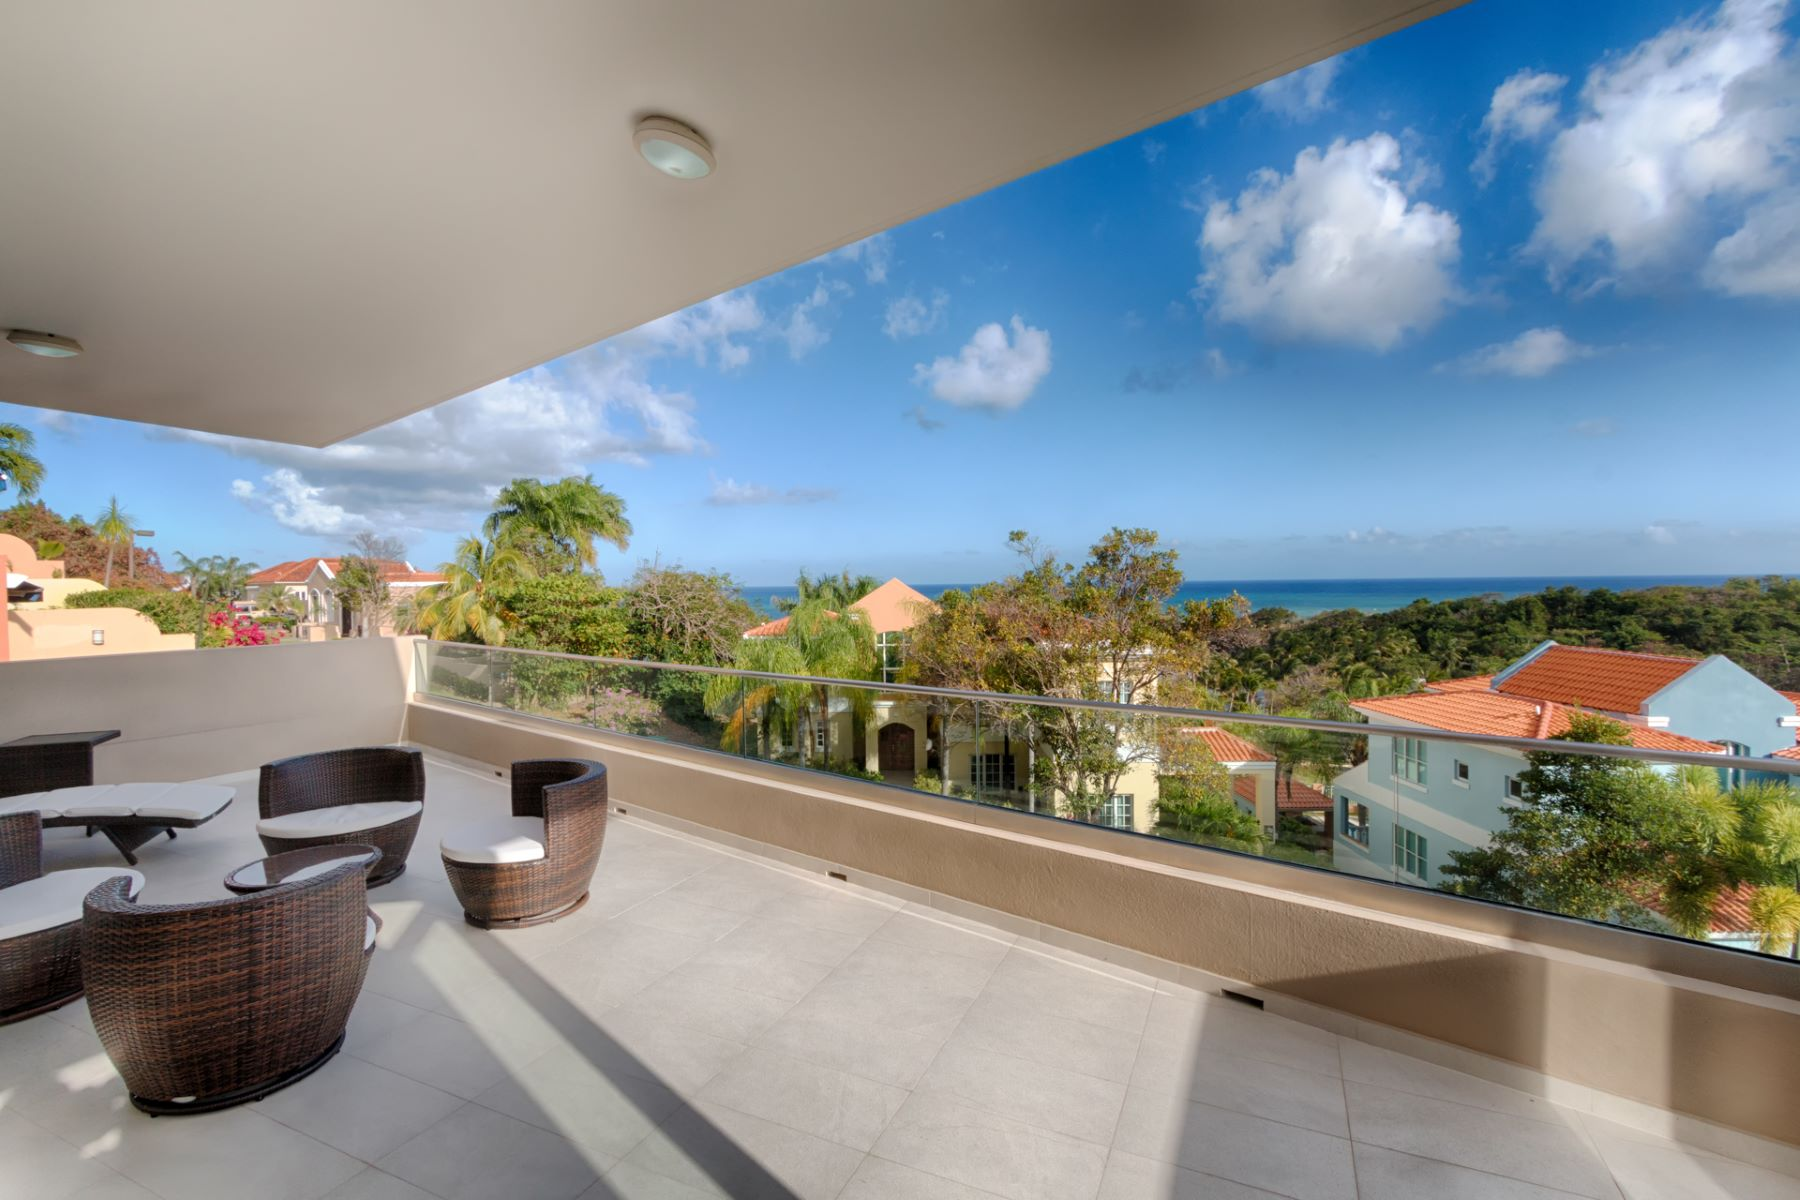 Additional photo for property listing at Ocean View Contemporary at Shell Castle Club 86 Shell Castle Club Palmas Del Mar, Puerto Rico 00791 Пуэрто-Рико